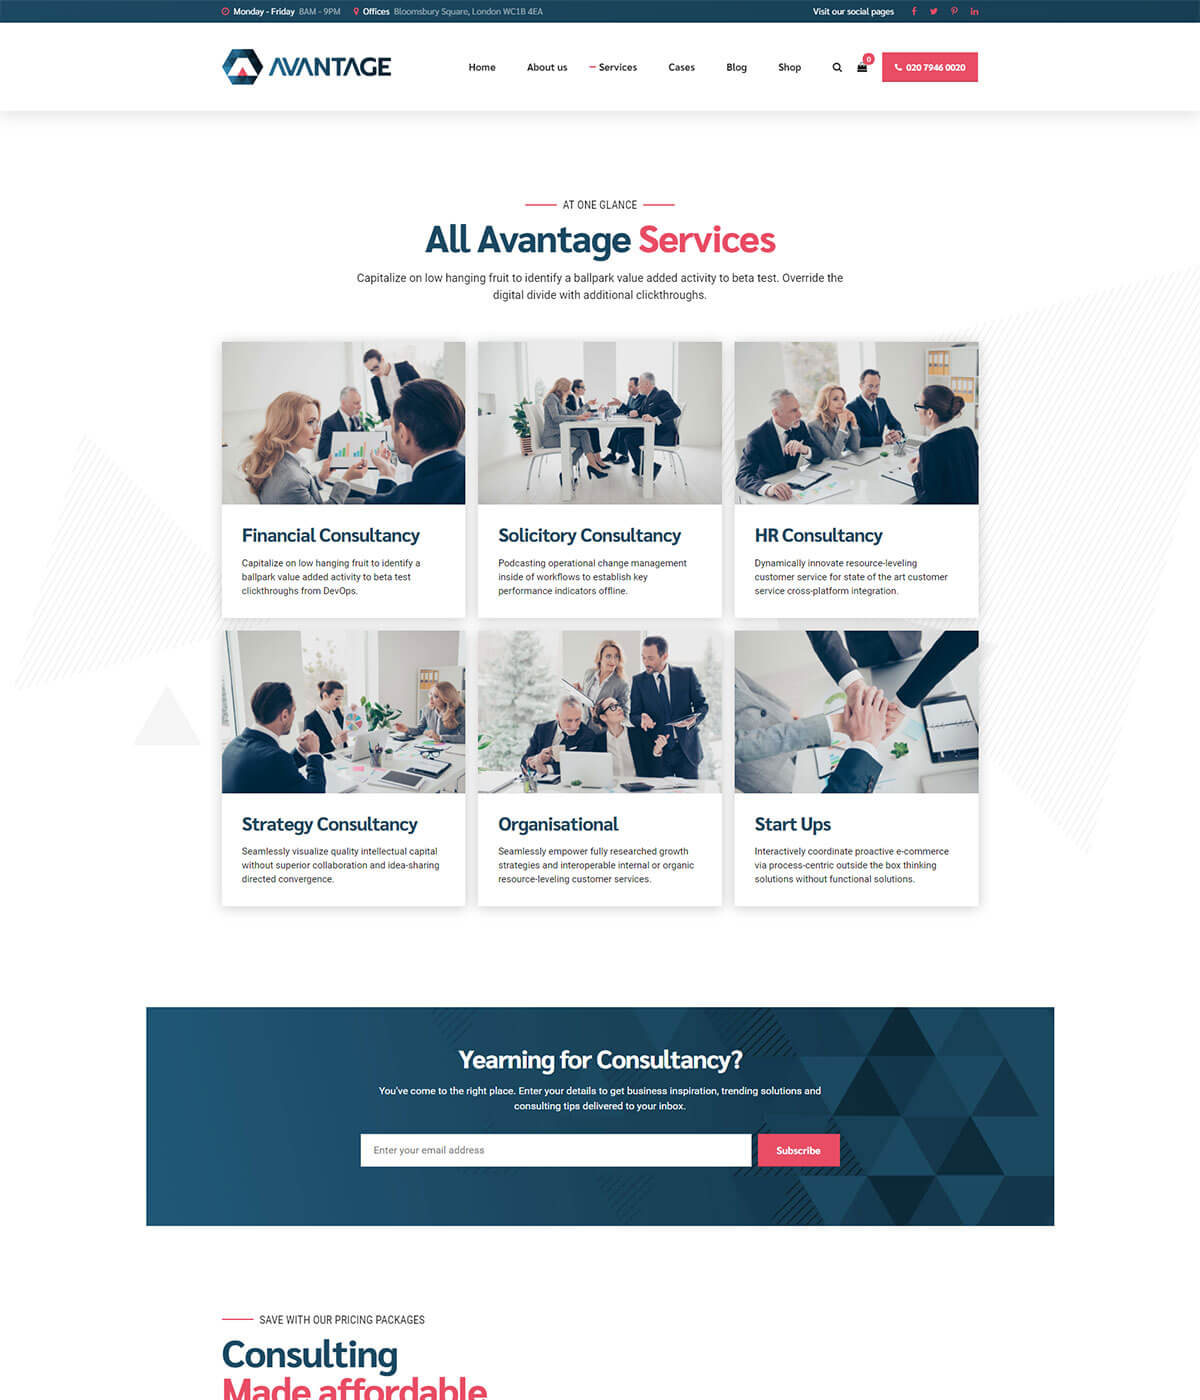 http://avantage.bold-themes.com/wp-content/uploads/2019/05/business-06-services.jpg